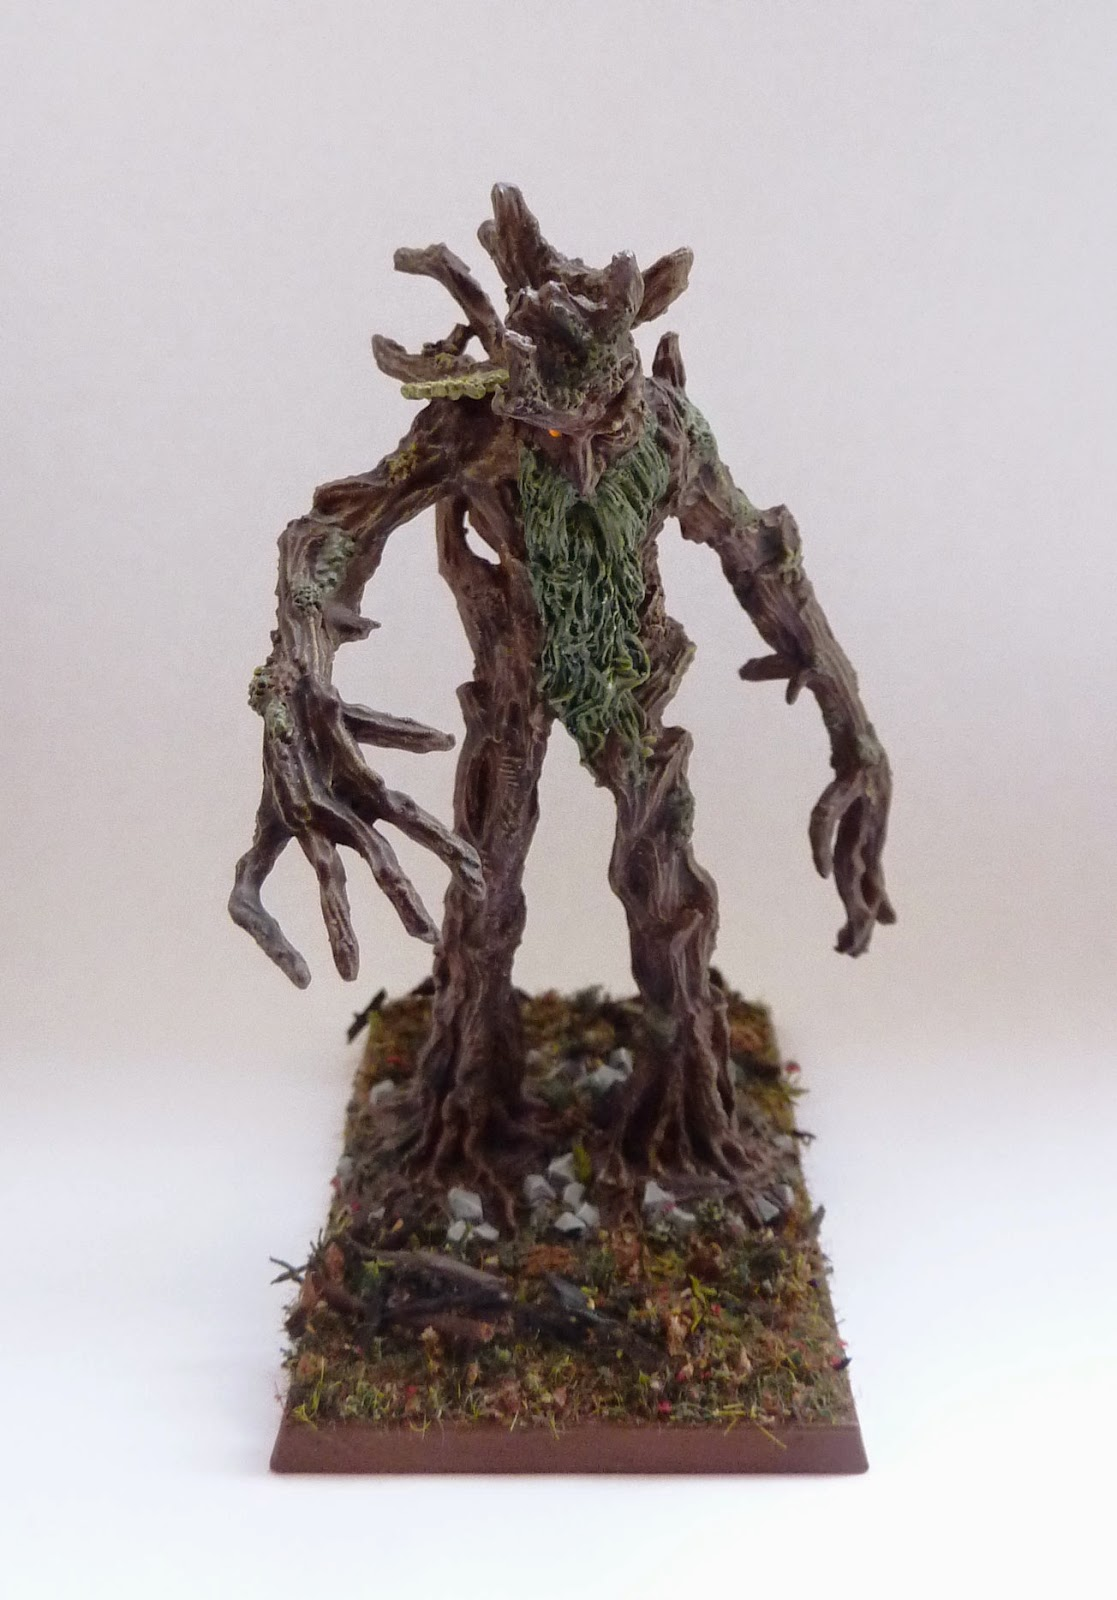 Lord of the Rings Treebeard - Treeman